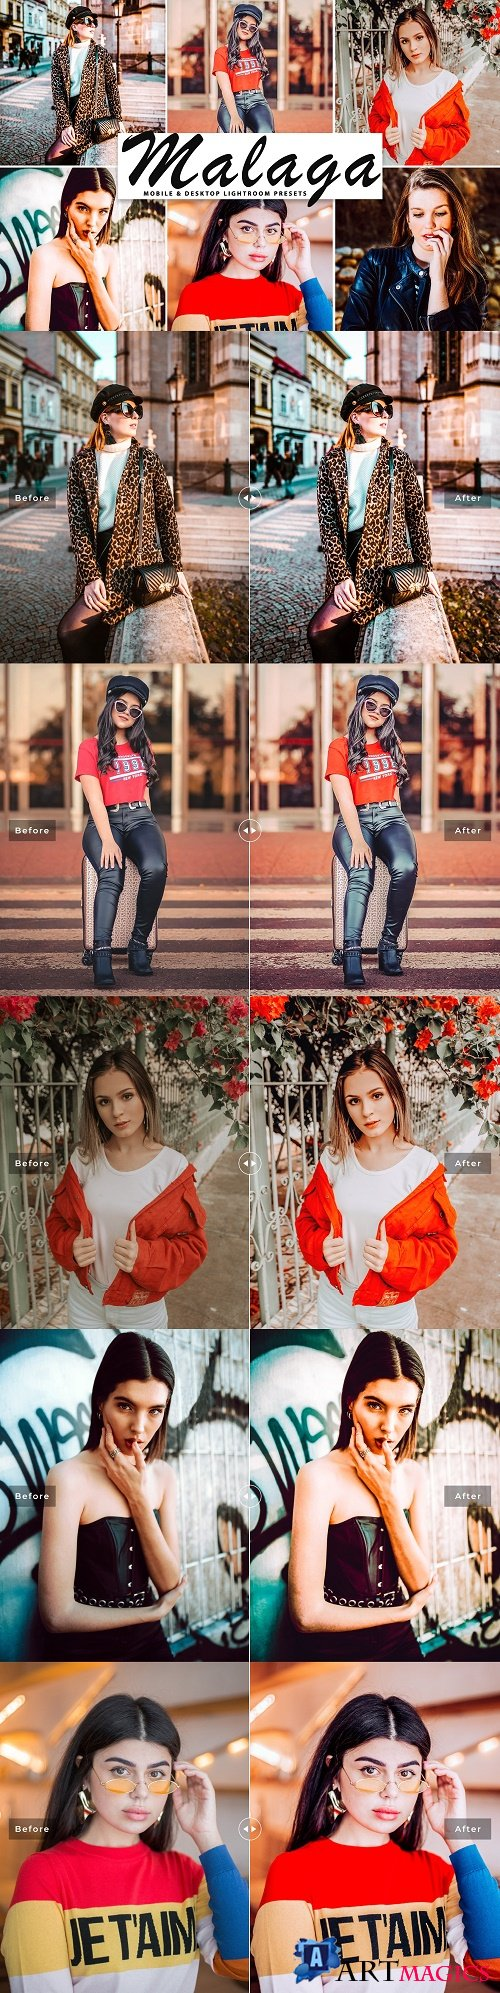 Malaga Lightroom Presets Pack - 4153755